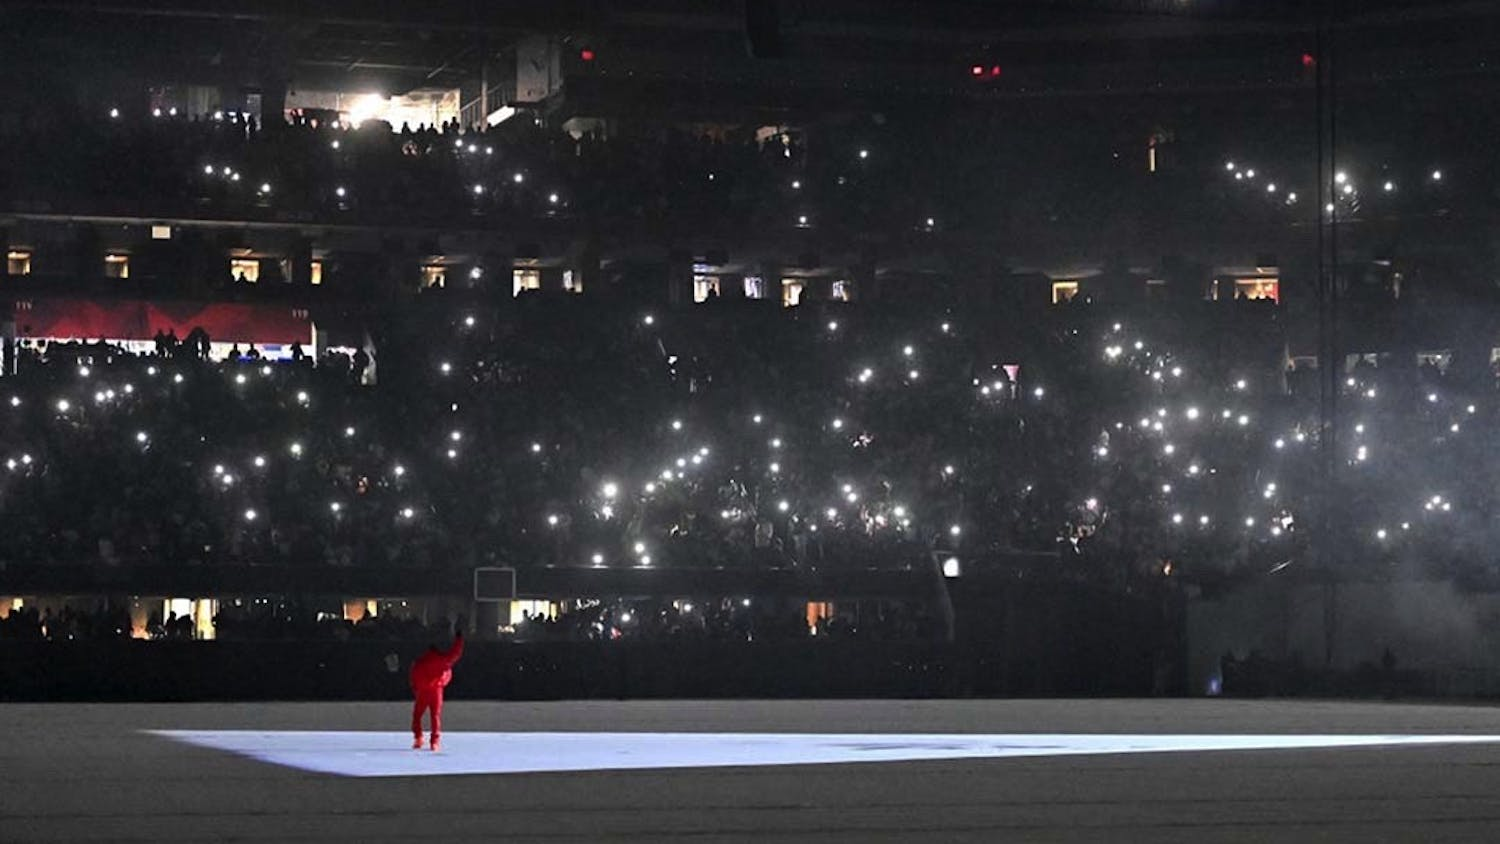 """Kanye West performs his songs at the """"DONDA by Kanye West"""" listening event at the first Donda listening party, in the Mercedes-Benz Stadium. West's most recent album was released through labels GOOD Music and Def Jam Recordings and is named after his mother."""